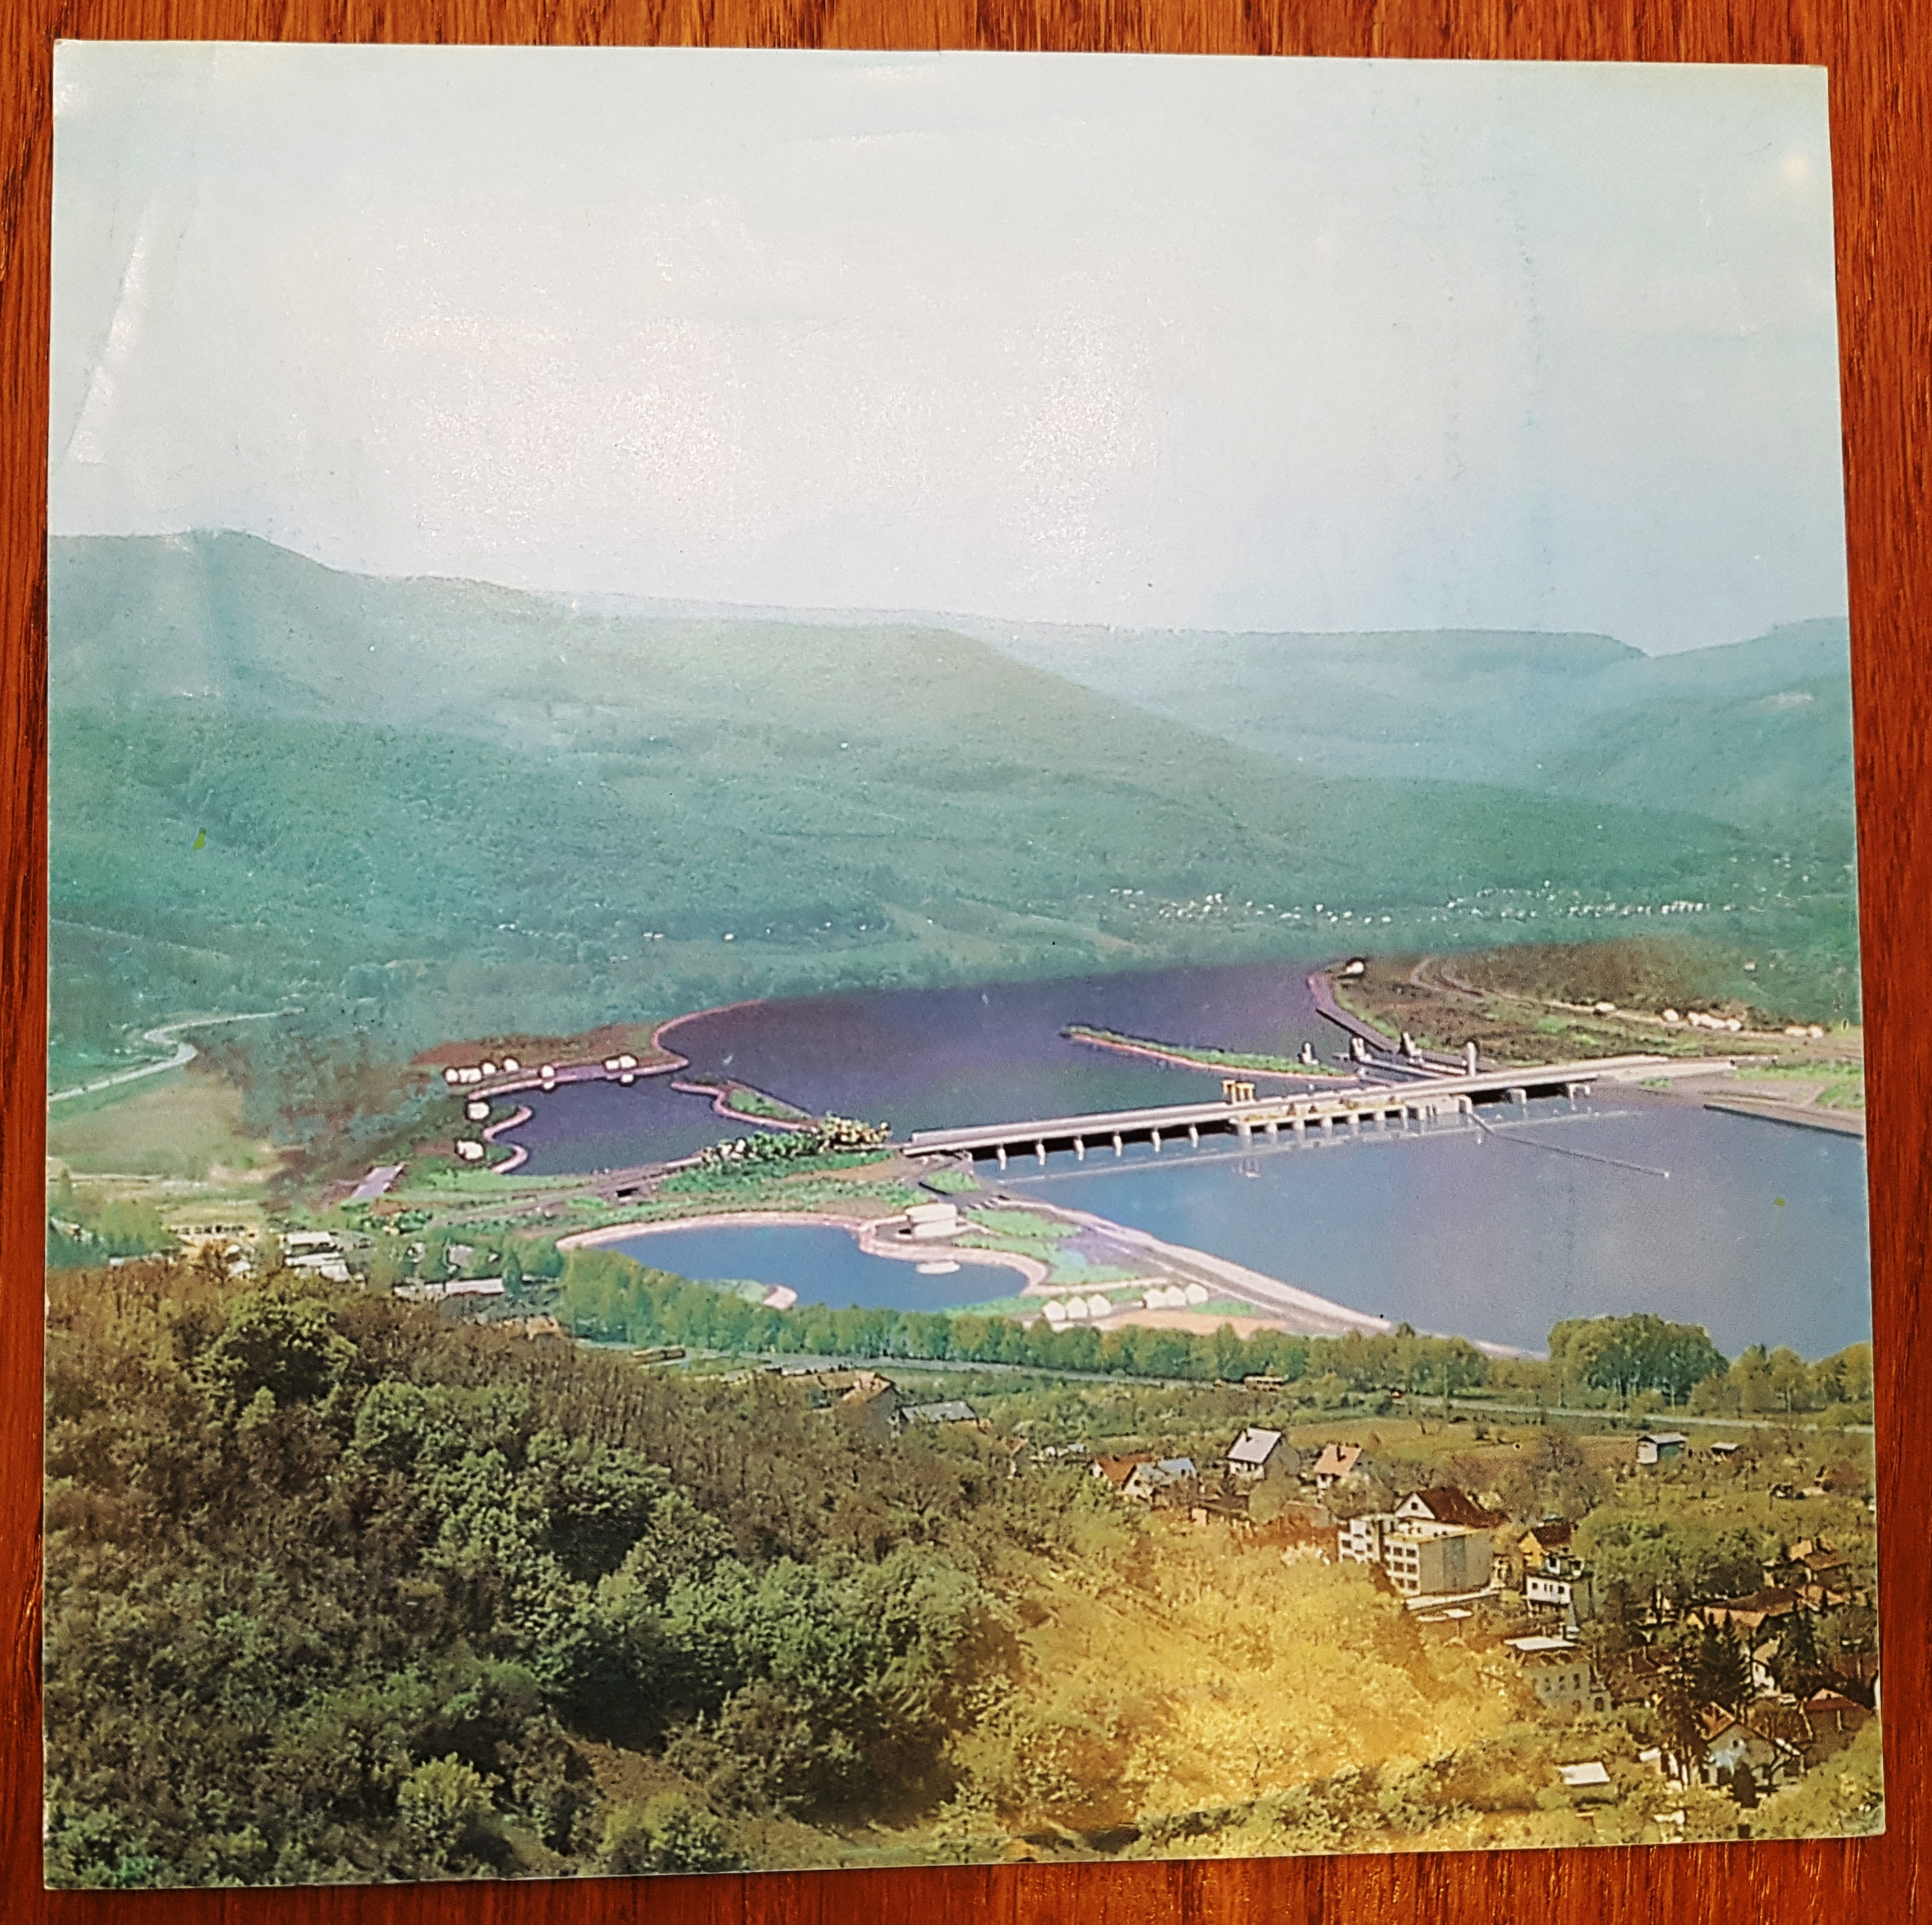 Imagined picture of the planned Danube dam at Nagymaros.